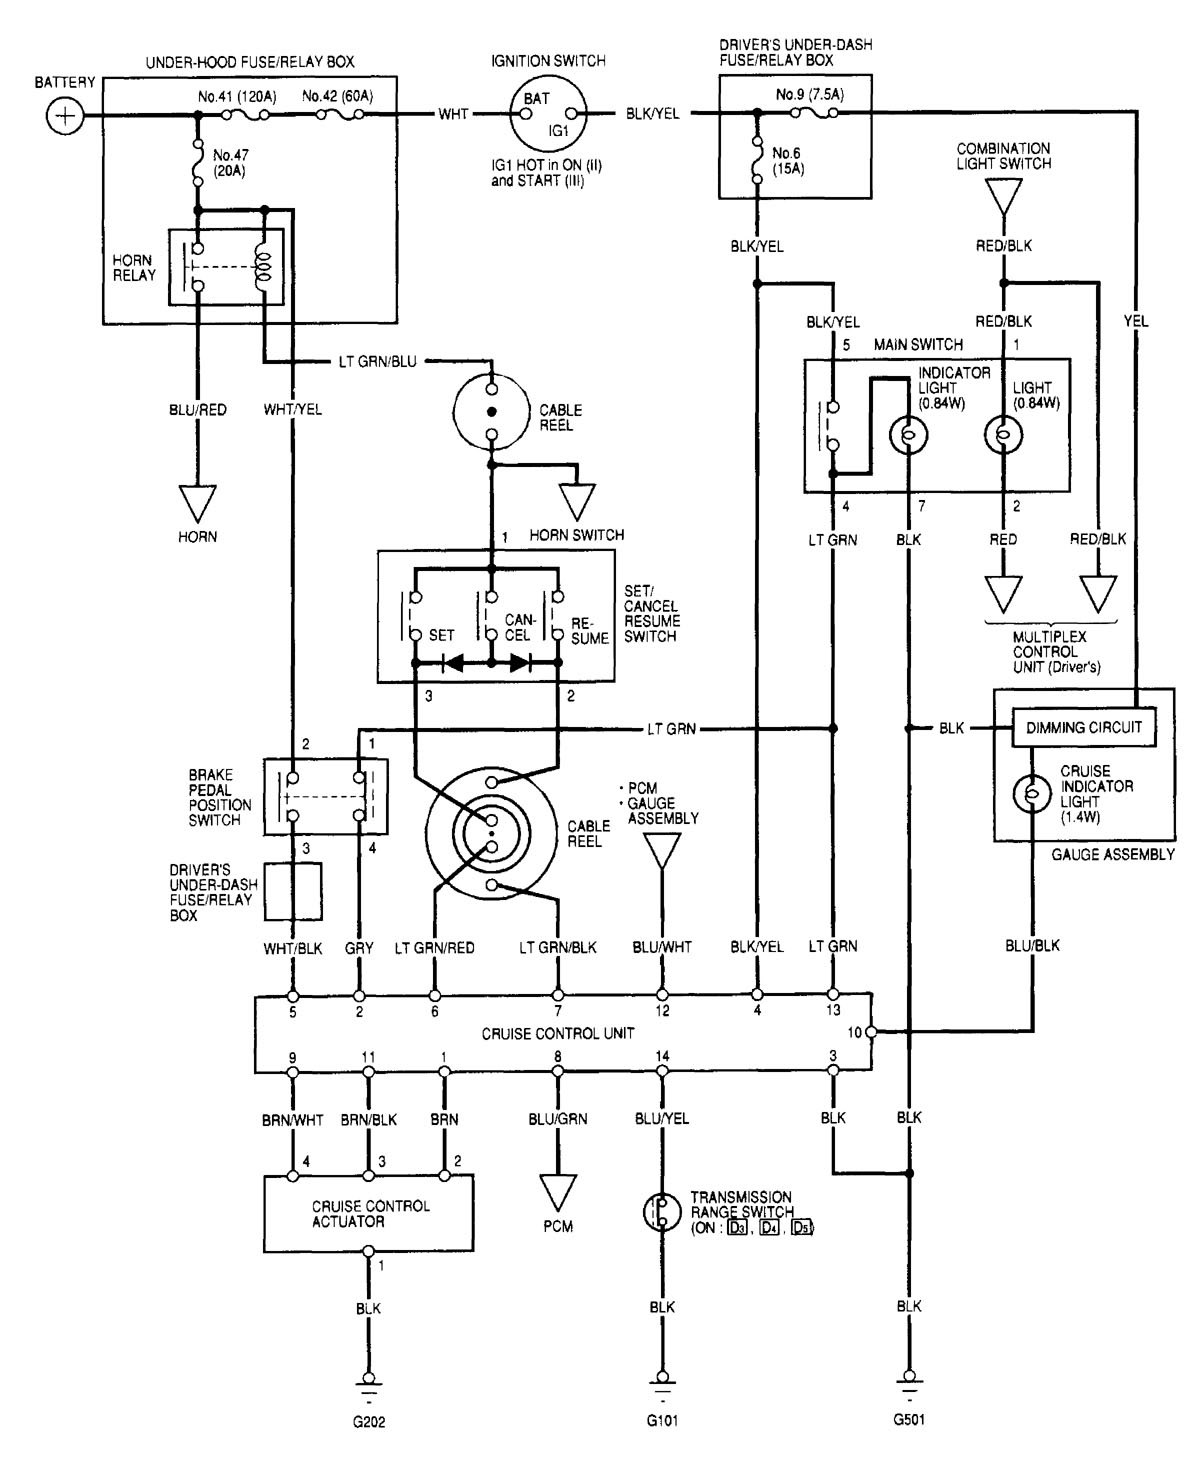 Acura Tl  2000 - 2001  - Wiring Diagrams - Speed Control